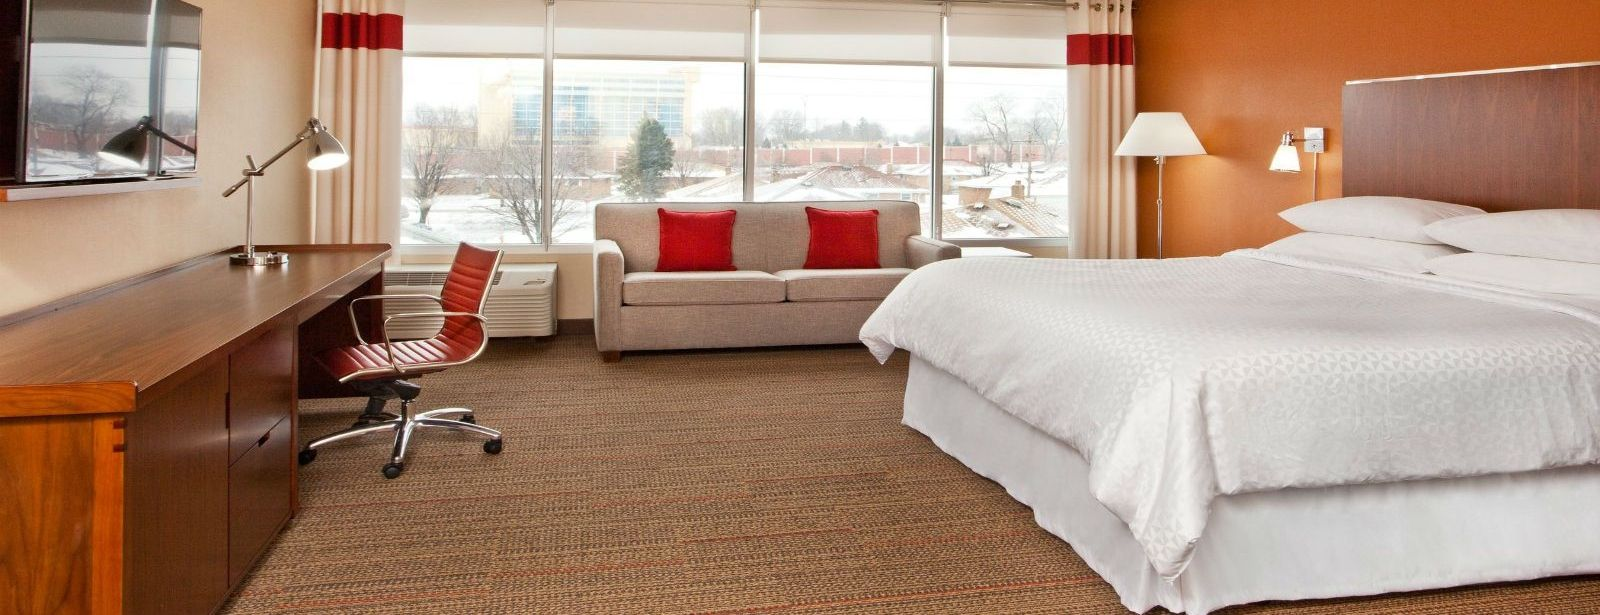 Cleveland Airport Accommodations - Deluxe King Room